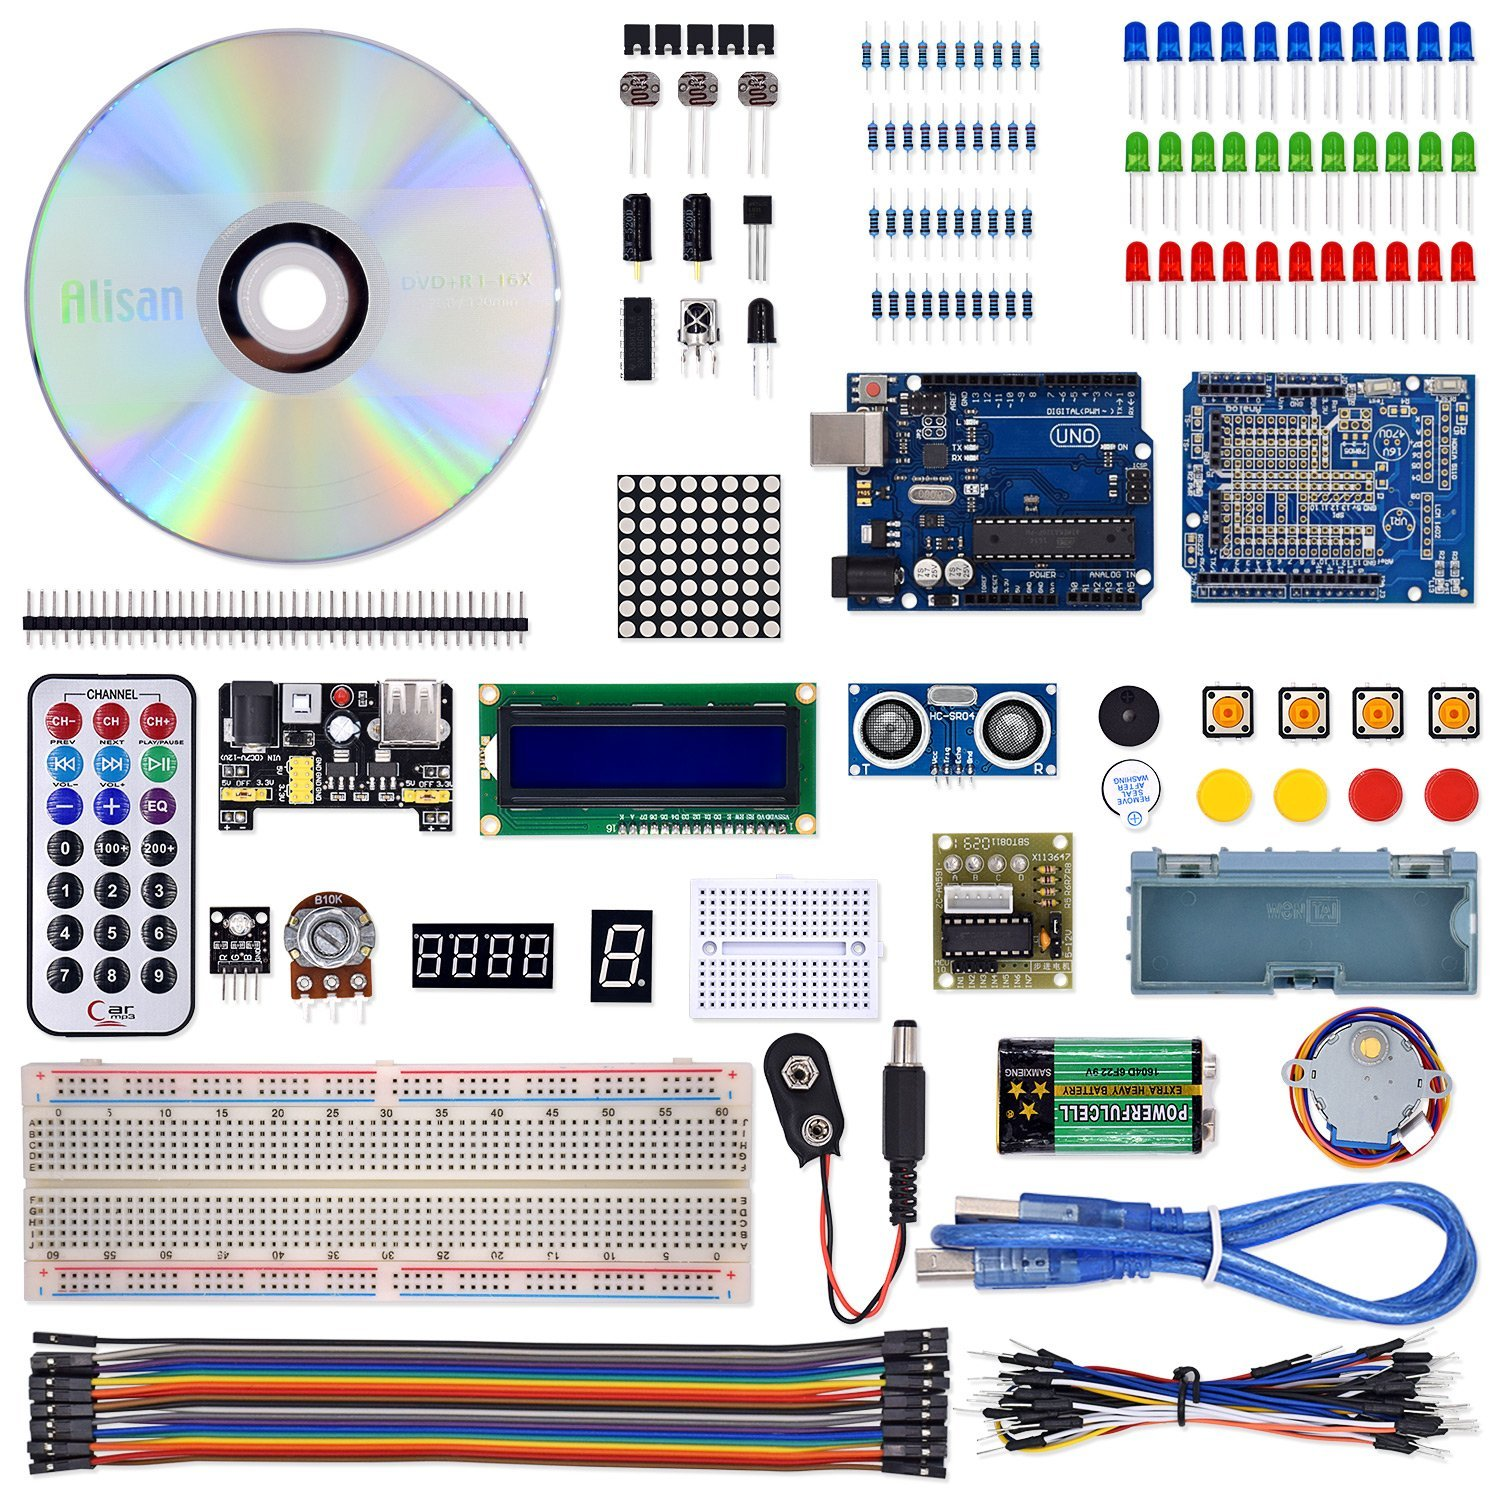 Cheap Project Breadboard Find Deals On Line At Details About 12 Pcs Kit Prototyping Pcb Printed Circuit Get Quotations Vkmaker T2 Complete Starter For Arduino Uno R3 Mega 2560 Robot Nano Kits